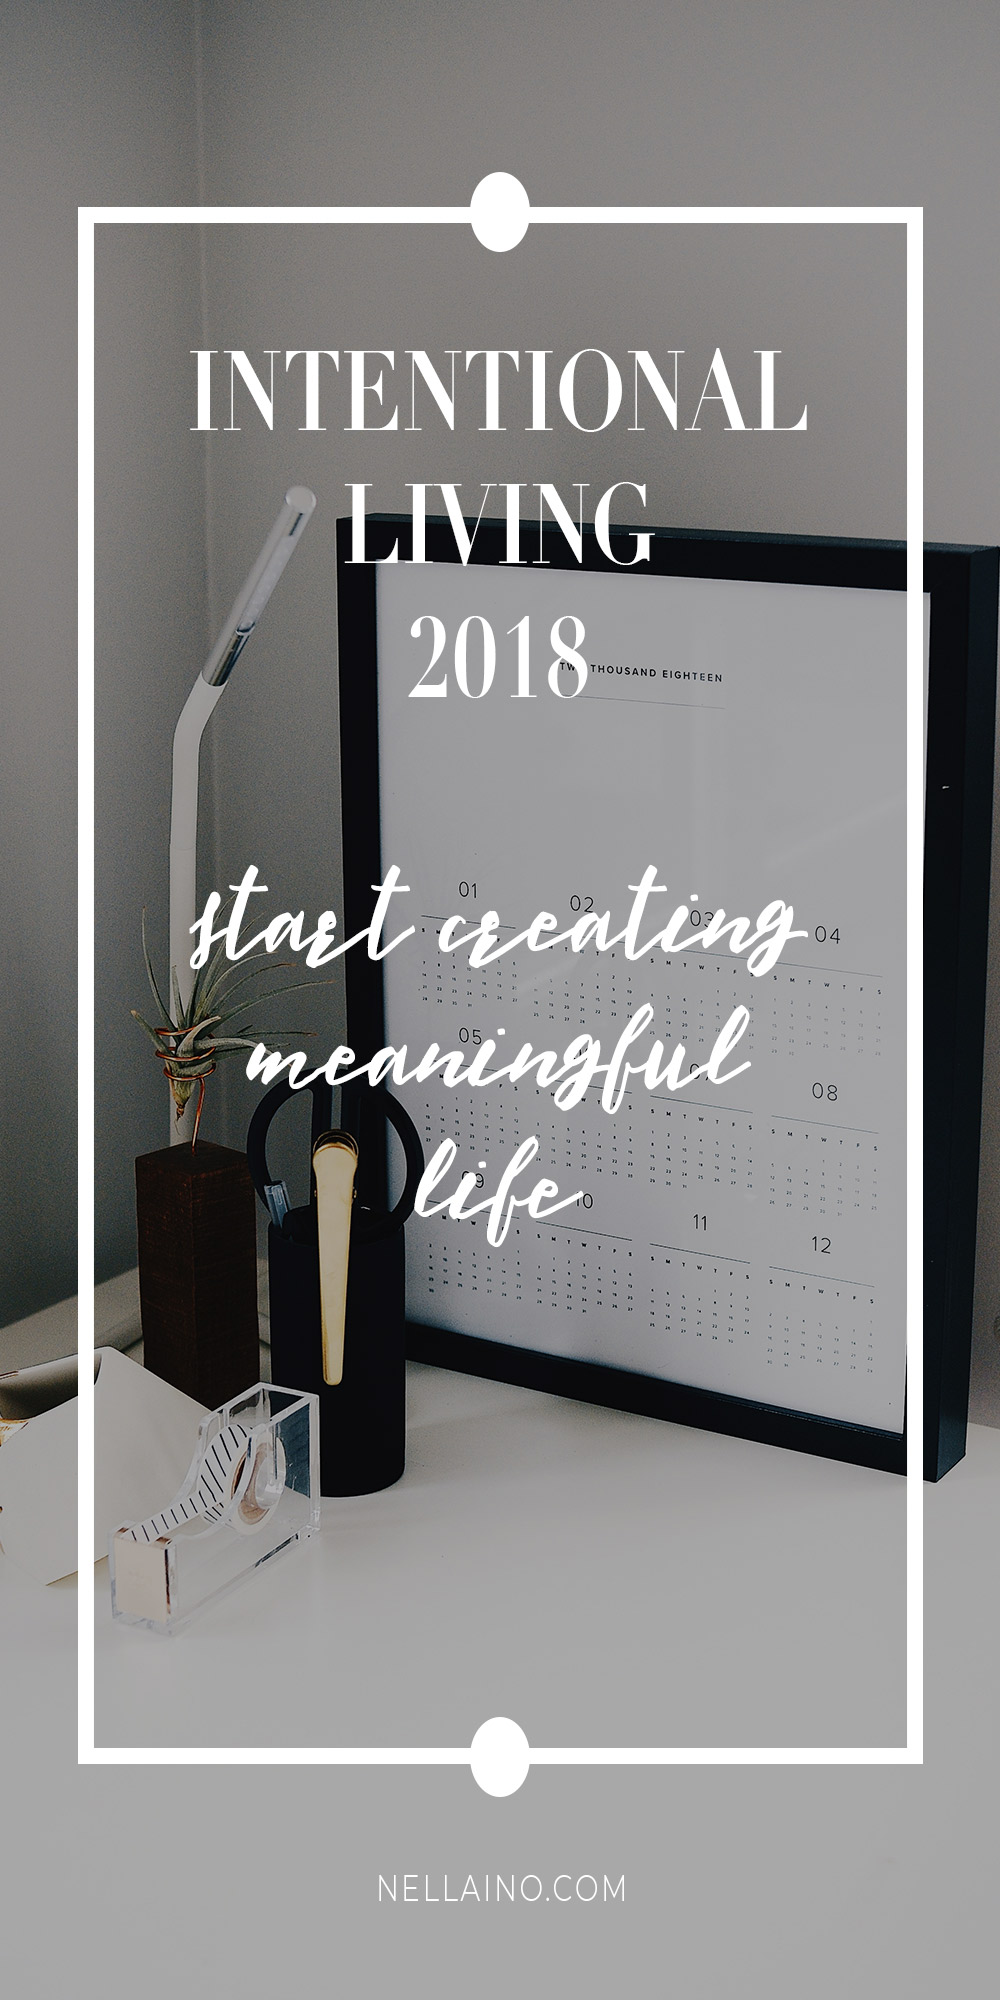 Intentional life and meaningful choices. Check my practical tips for more intentional living in year 2018. www.nellaino.com/blog #intentionalliving #inspiringquotes #nellaino